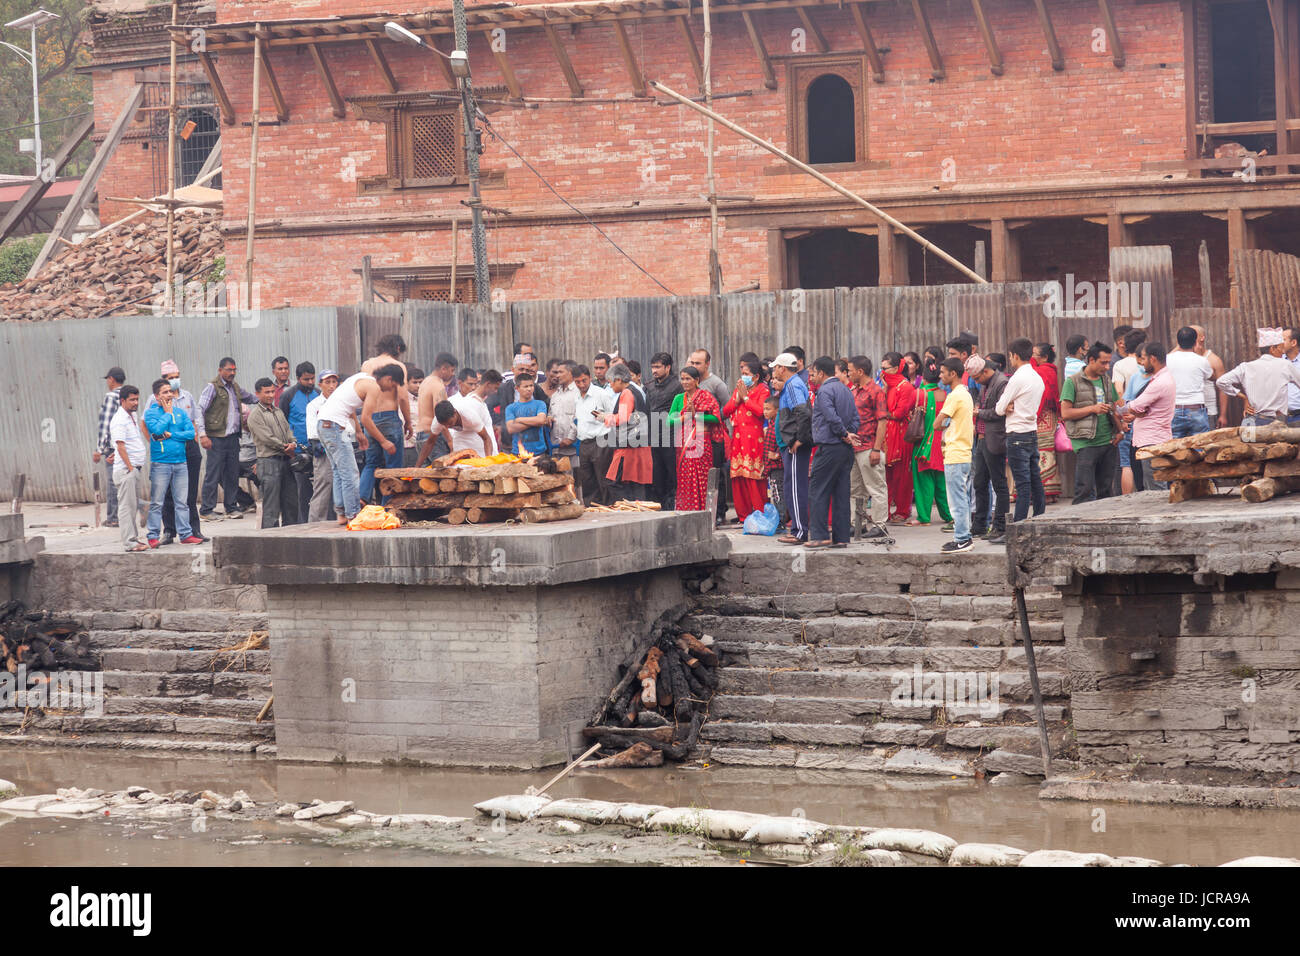 Cremation Ceremony at the Ghats site and the Holy Temple of Lord Shiva in Pasupatianth Temple, Kathmandu,Nepal,Asia - Stock Image